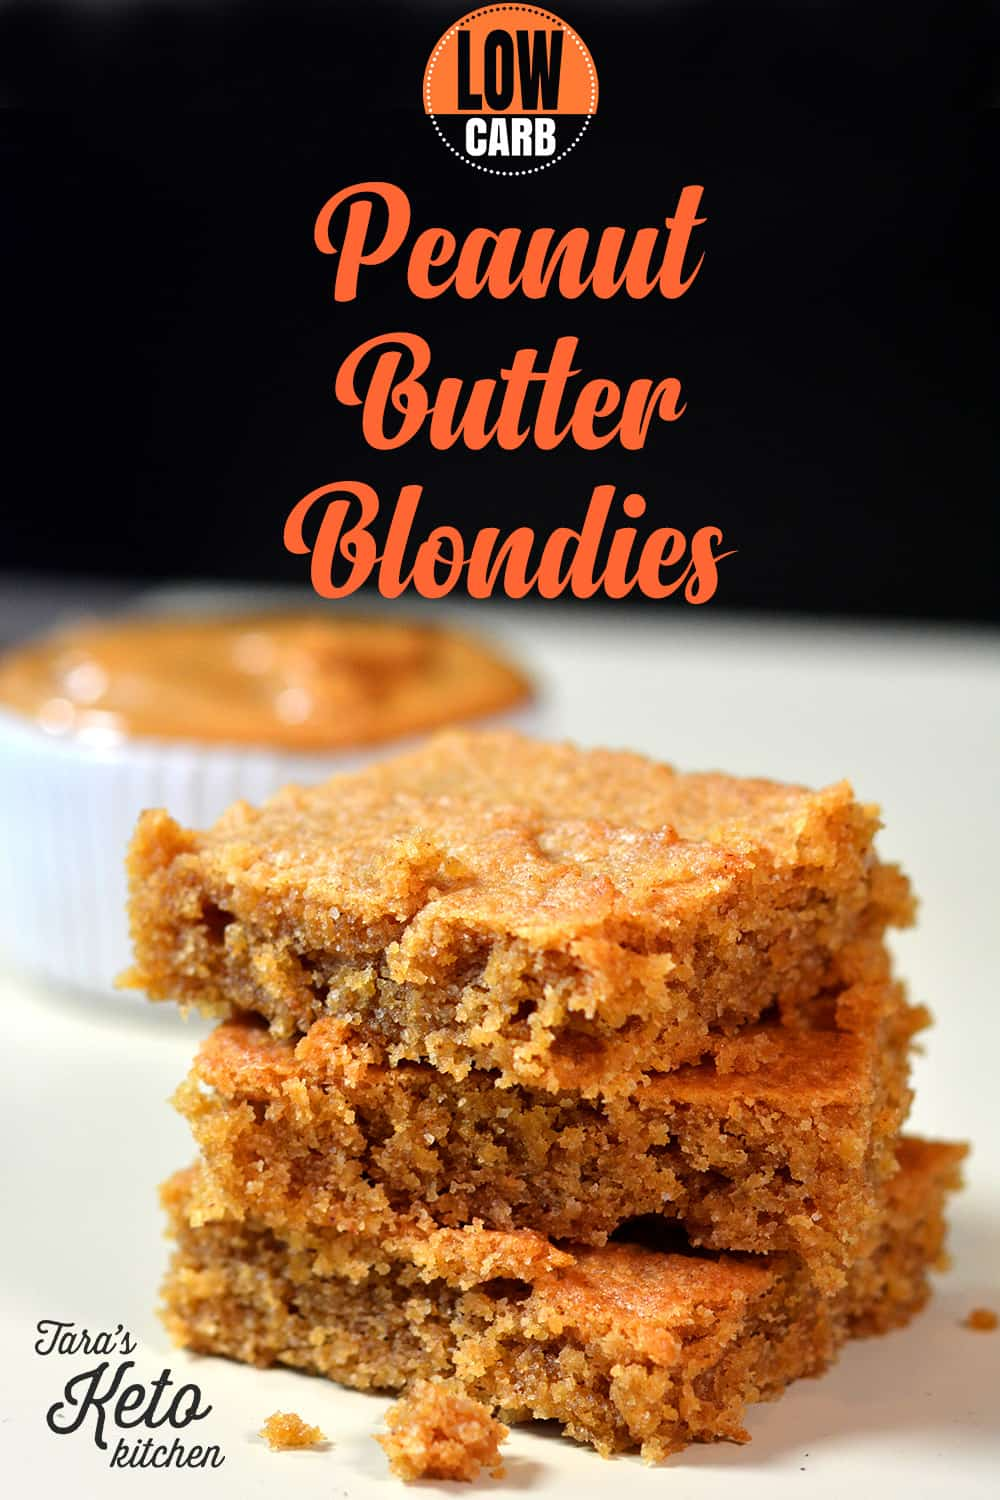 Low Carb Peanut Butter Blondies stacked slices with title